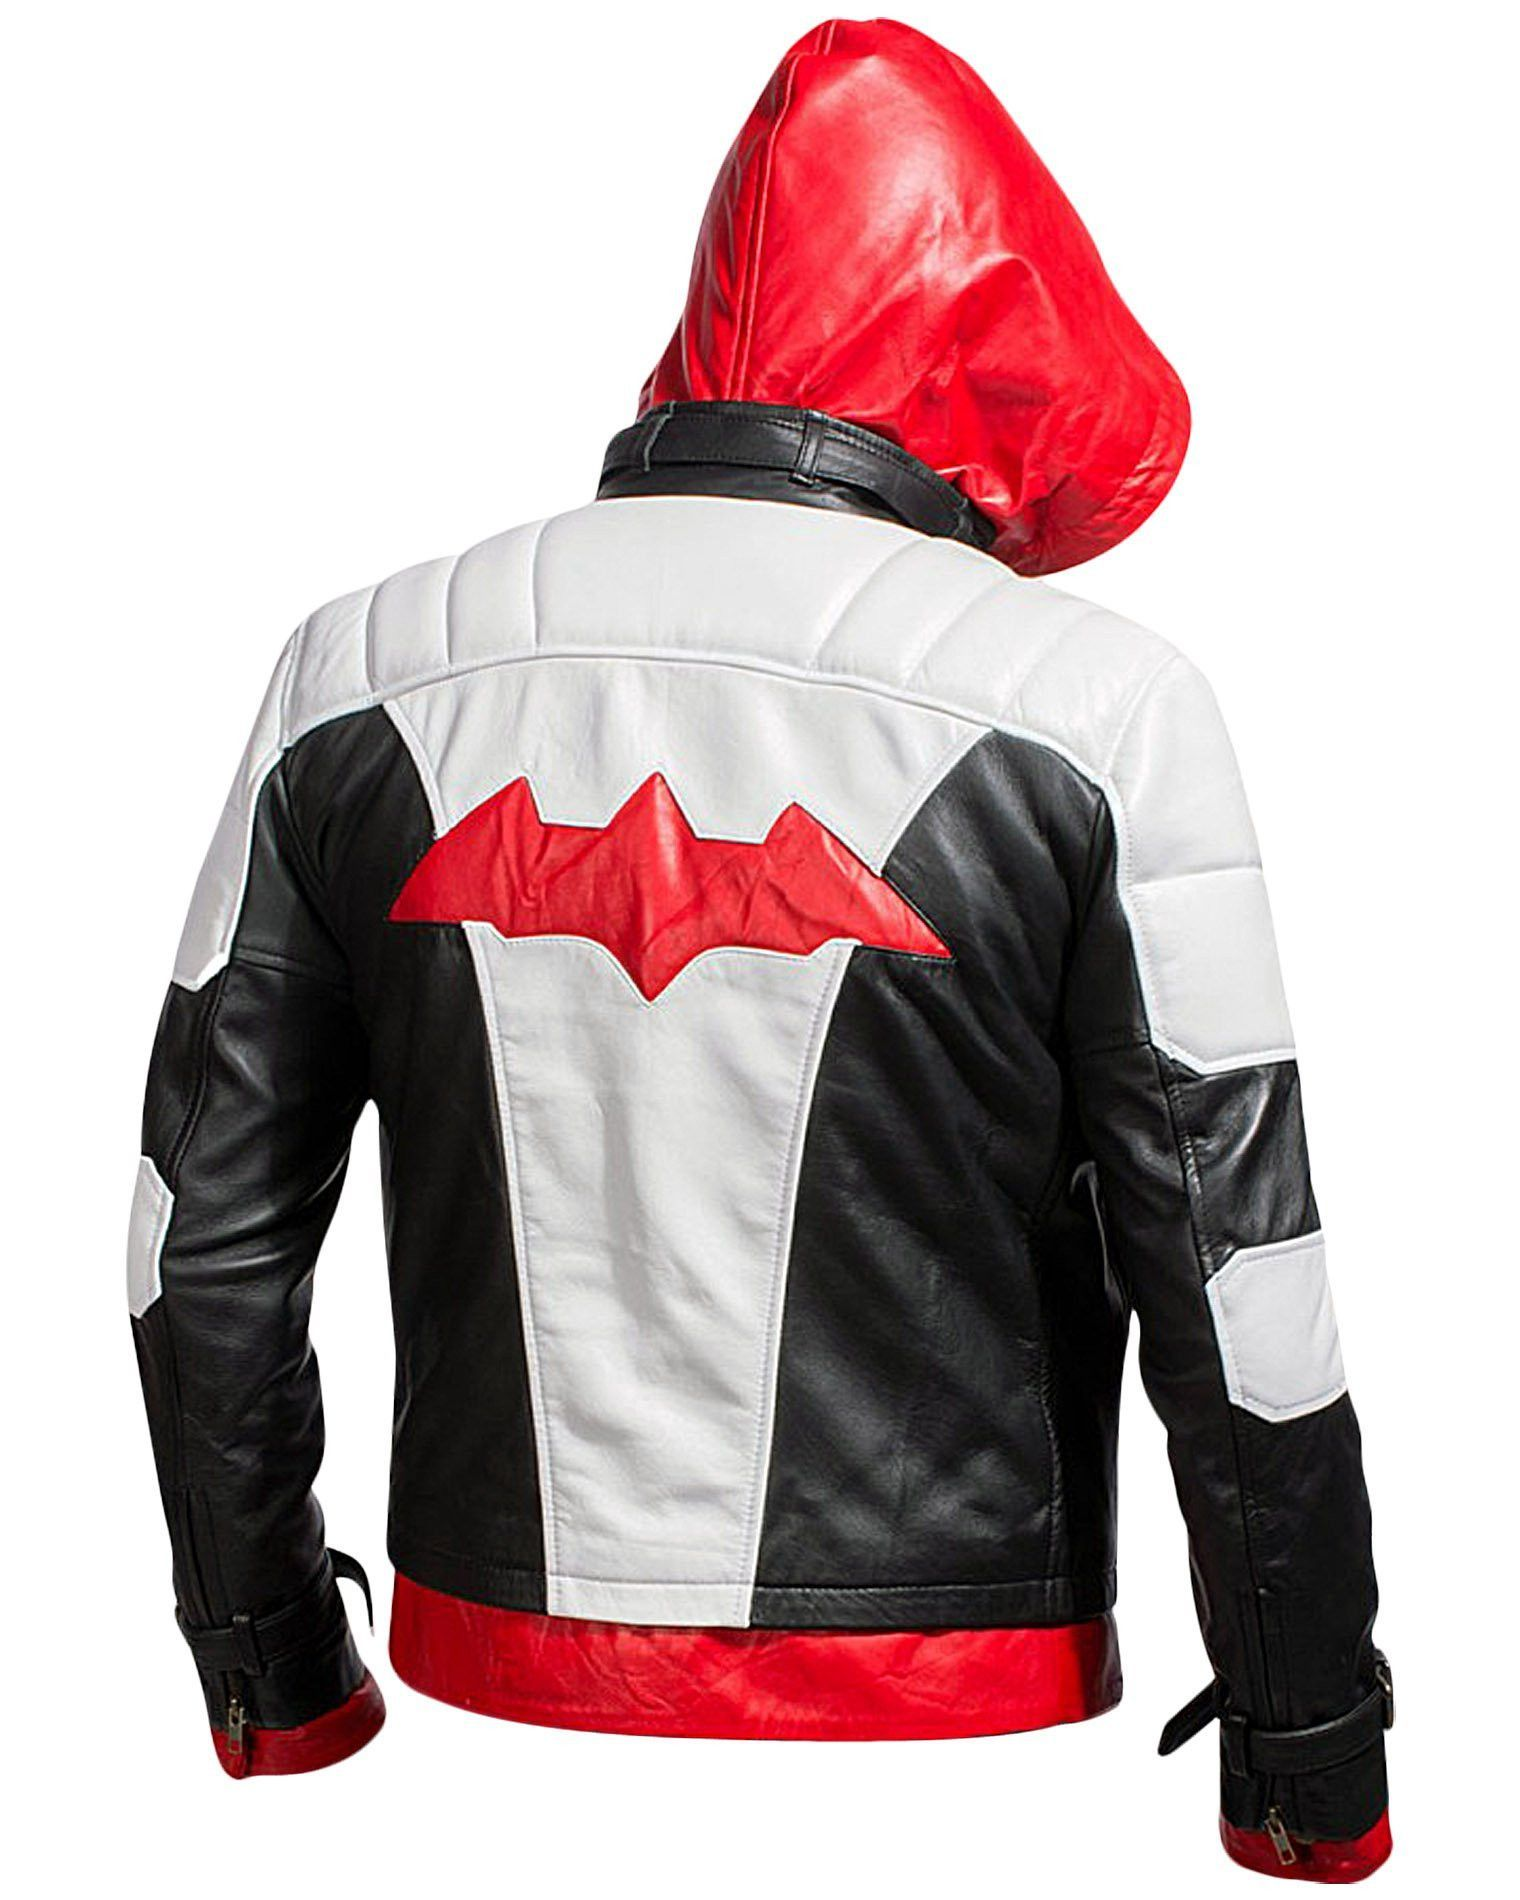 e9b38e1e962f Bat Logo Knight Red Hood Jacket with Vest Arkham Era The Hooded Bat Knight  Man Jacket gets a 2 in 1 Style allowing you to carry it both as a Vest and  ...